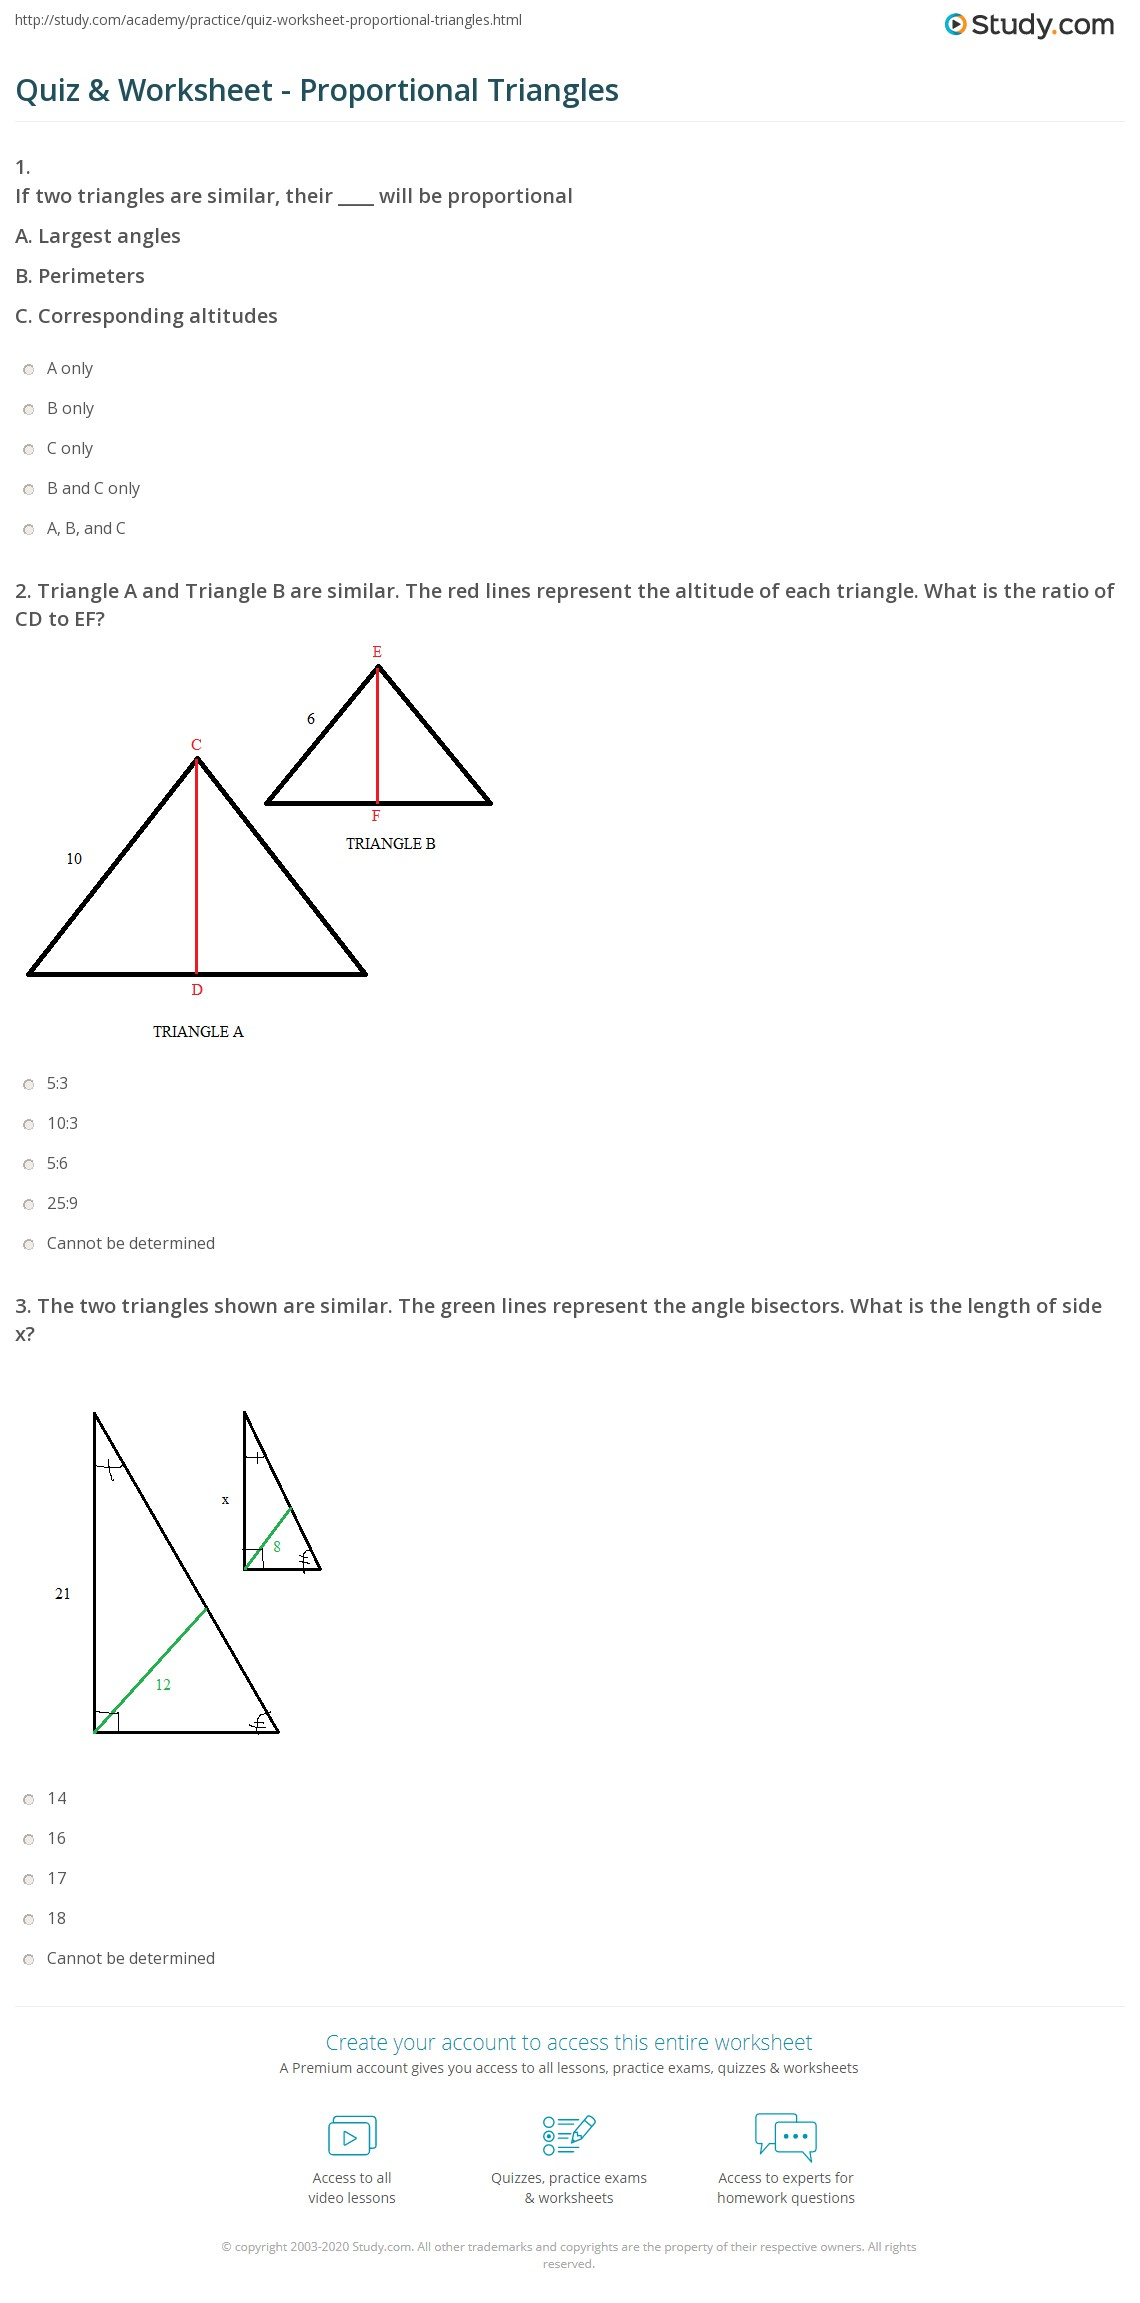 worksheet Similar Triangles Proportions Worksheet quiz worksheet proportional triangles study com print relationships in worksheet